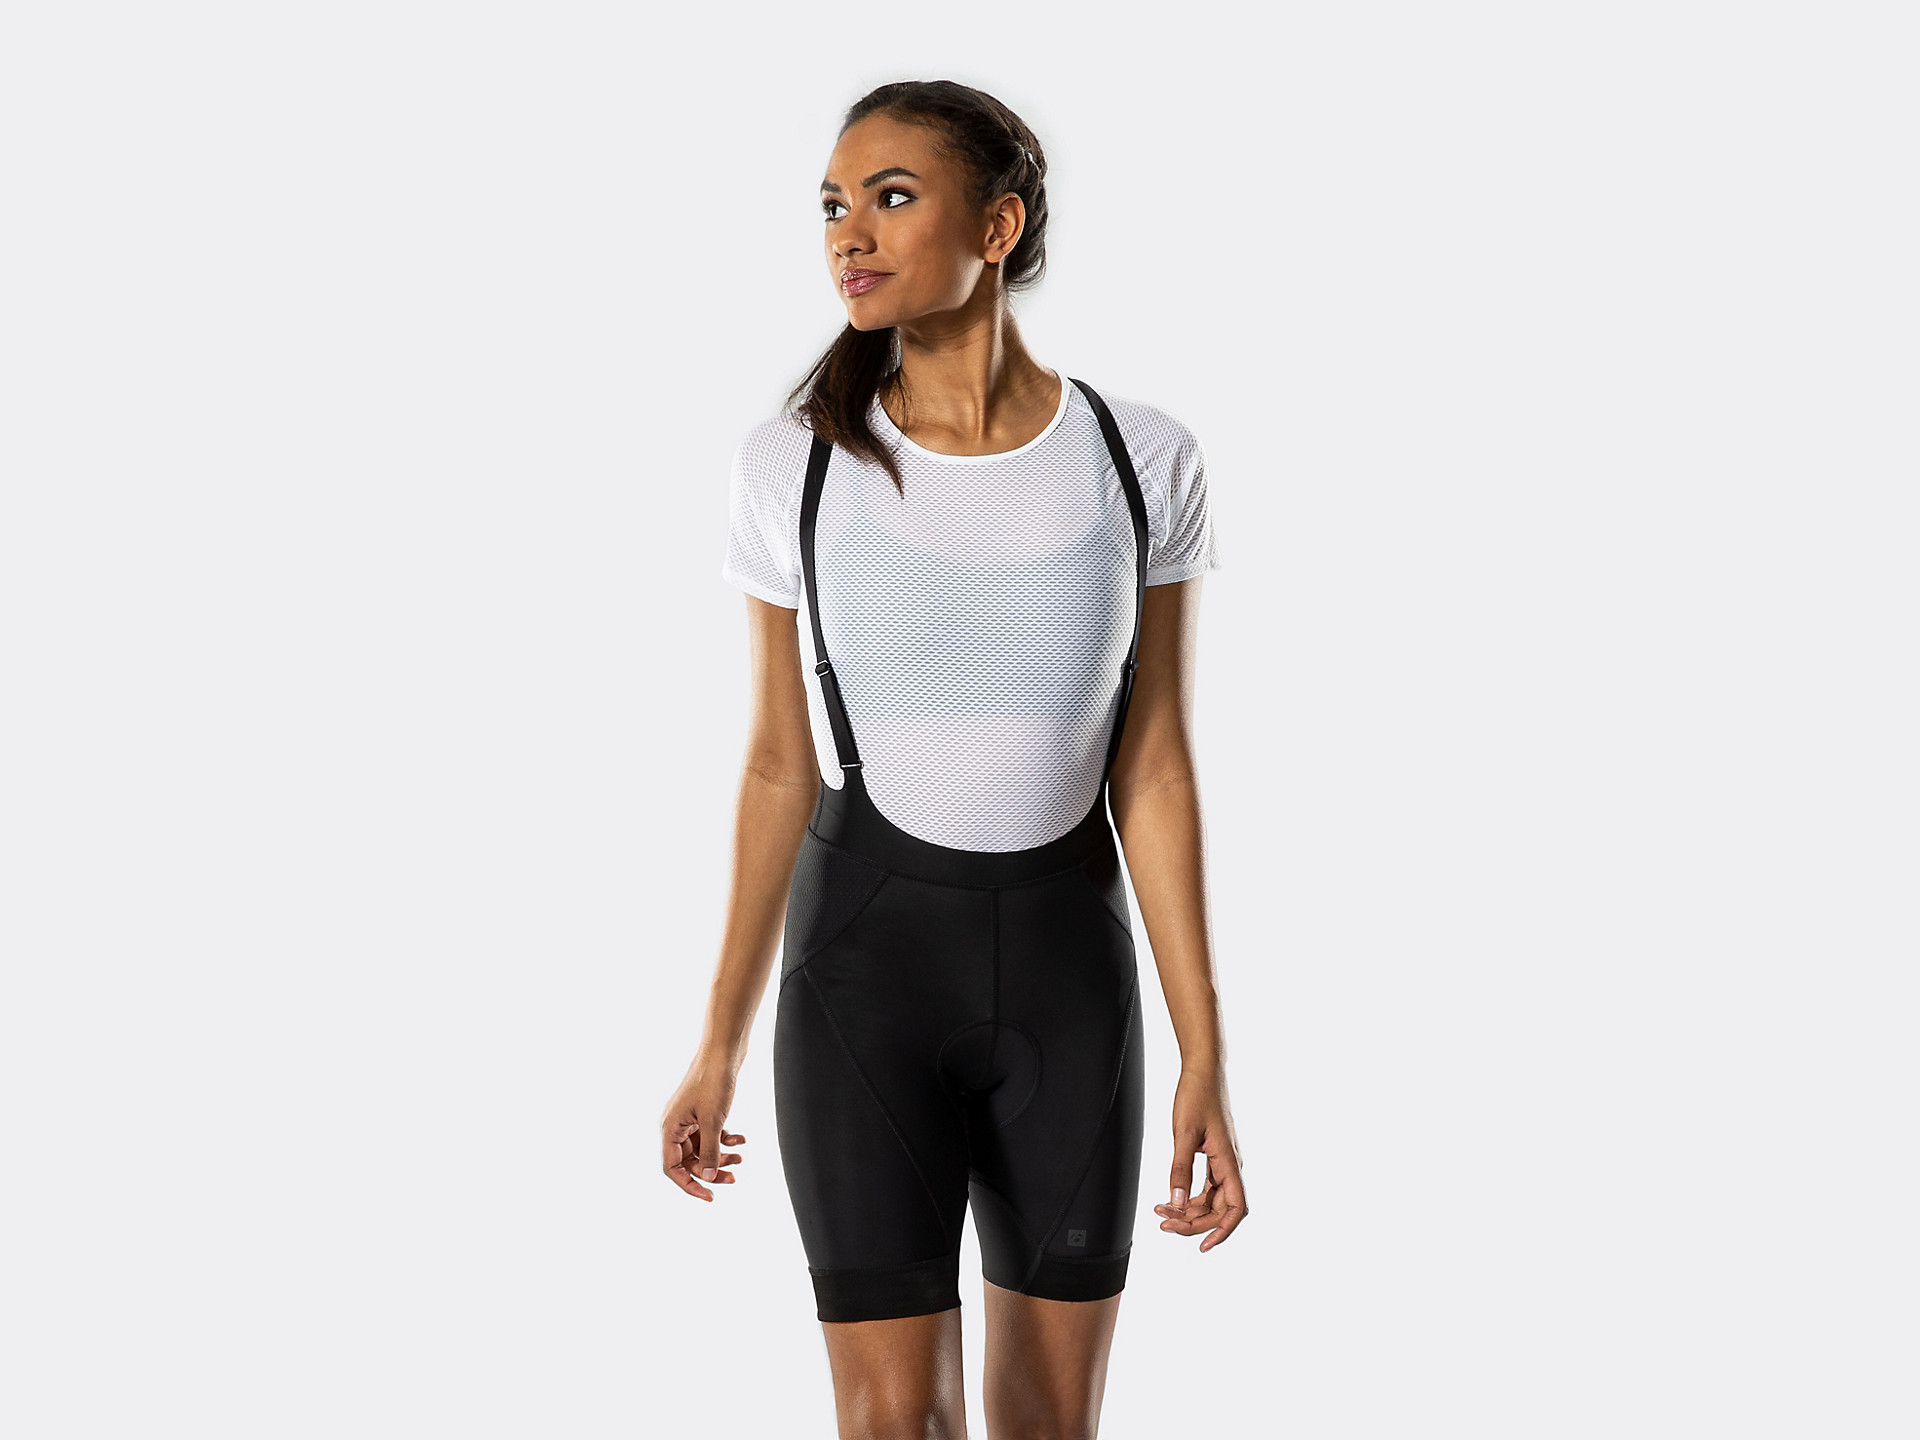 a80d2f6daf3fb Bontrager Meraj Women s Bib Cycling Short